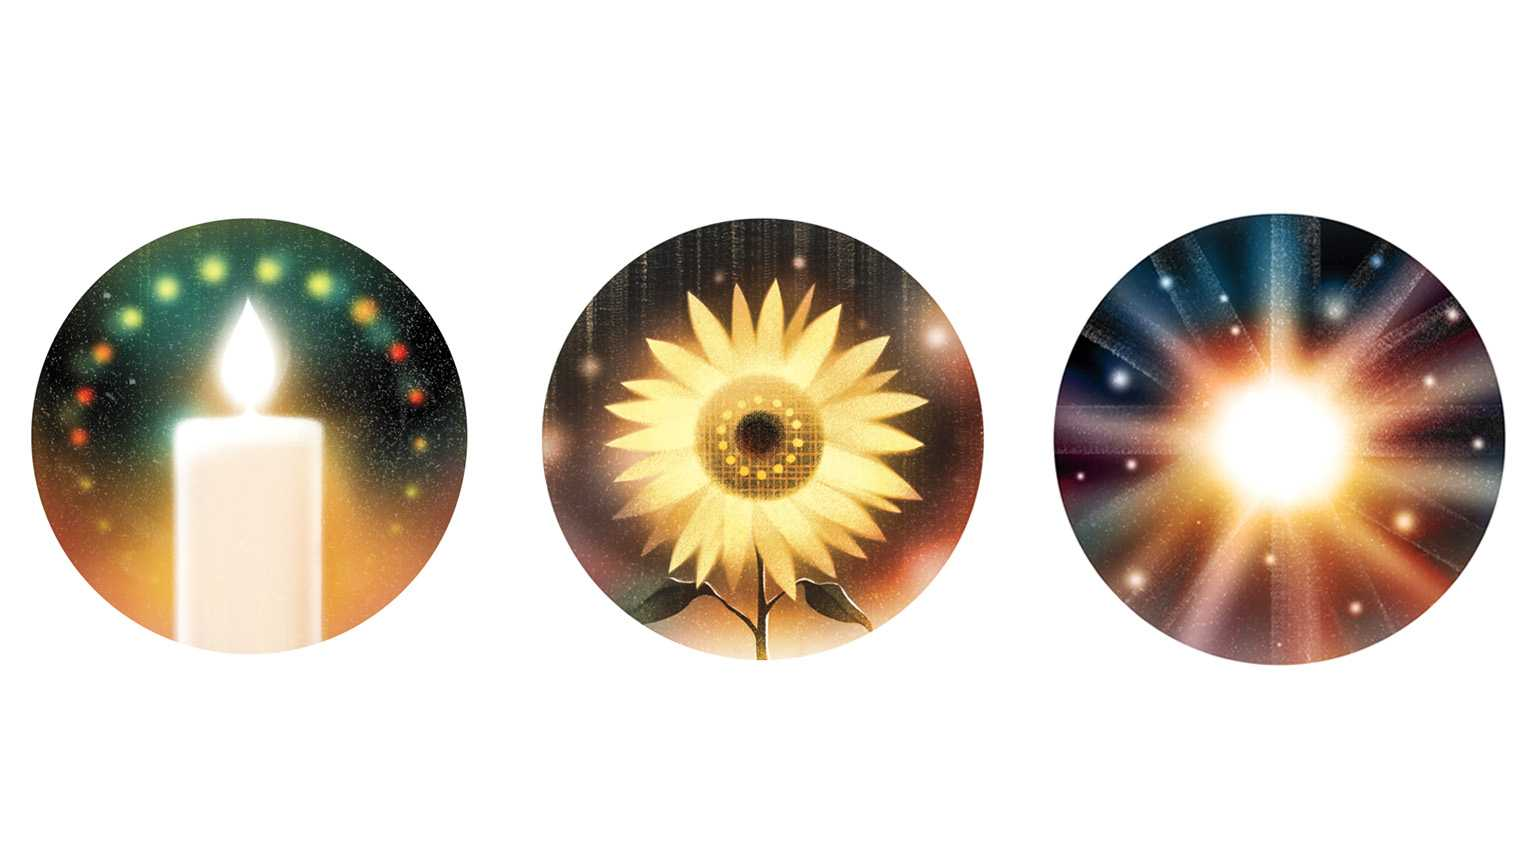 An illustration of a candle, sunflower and golden light; Illustrations by Jasu Hu